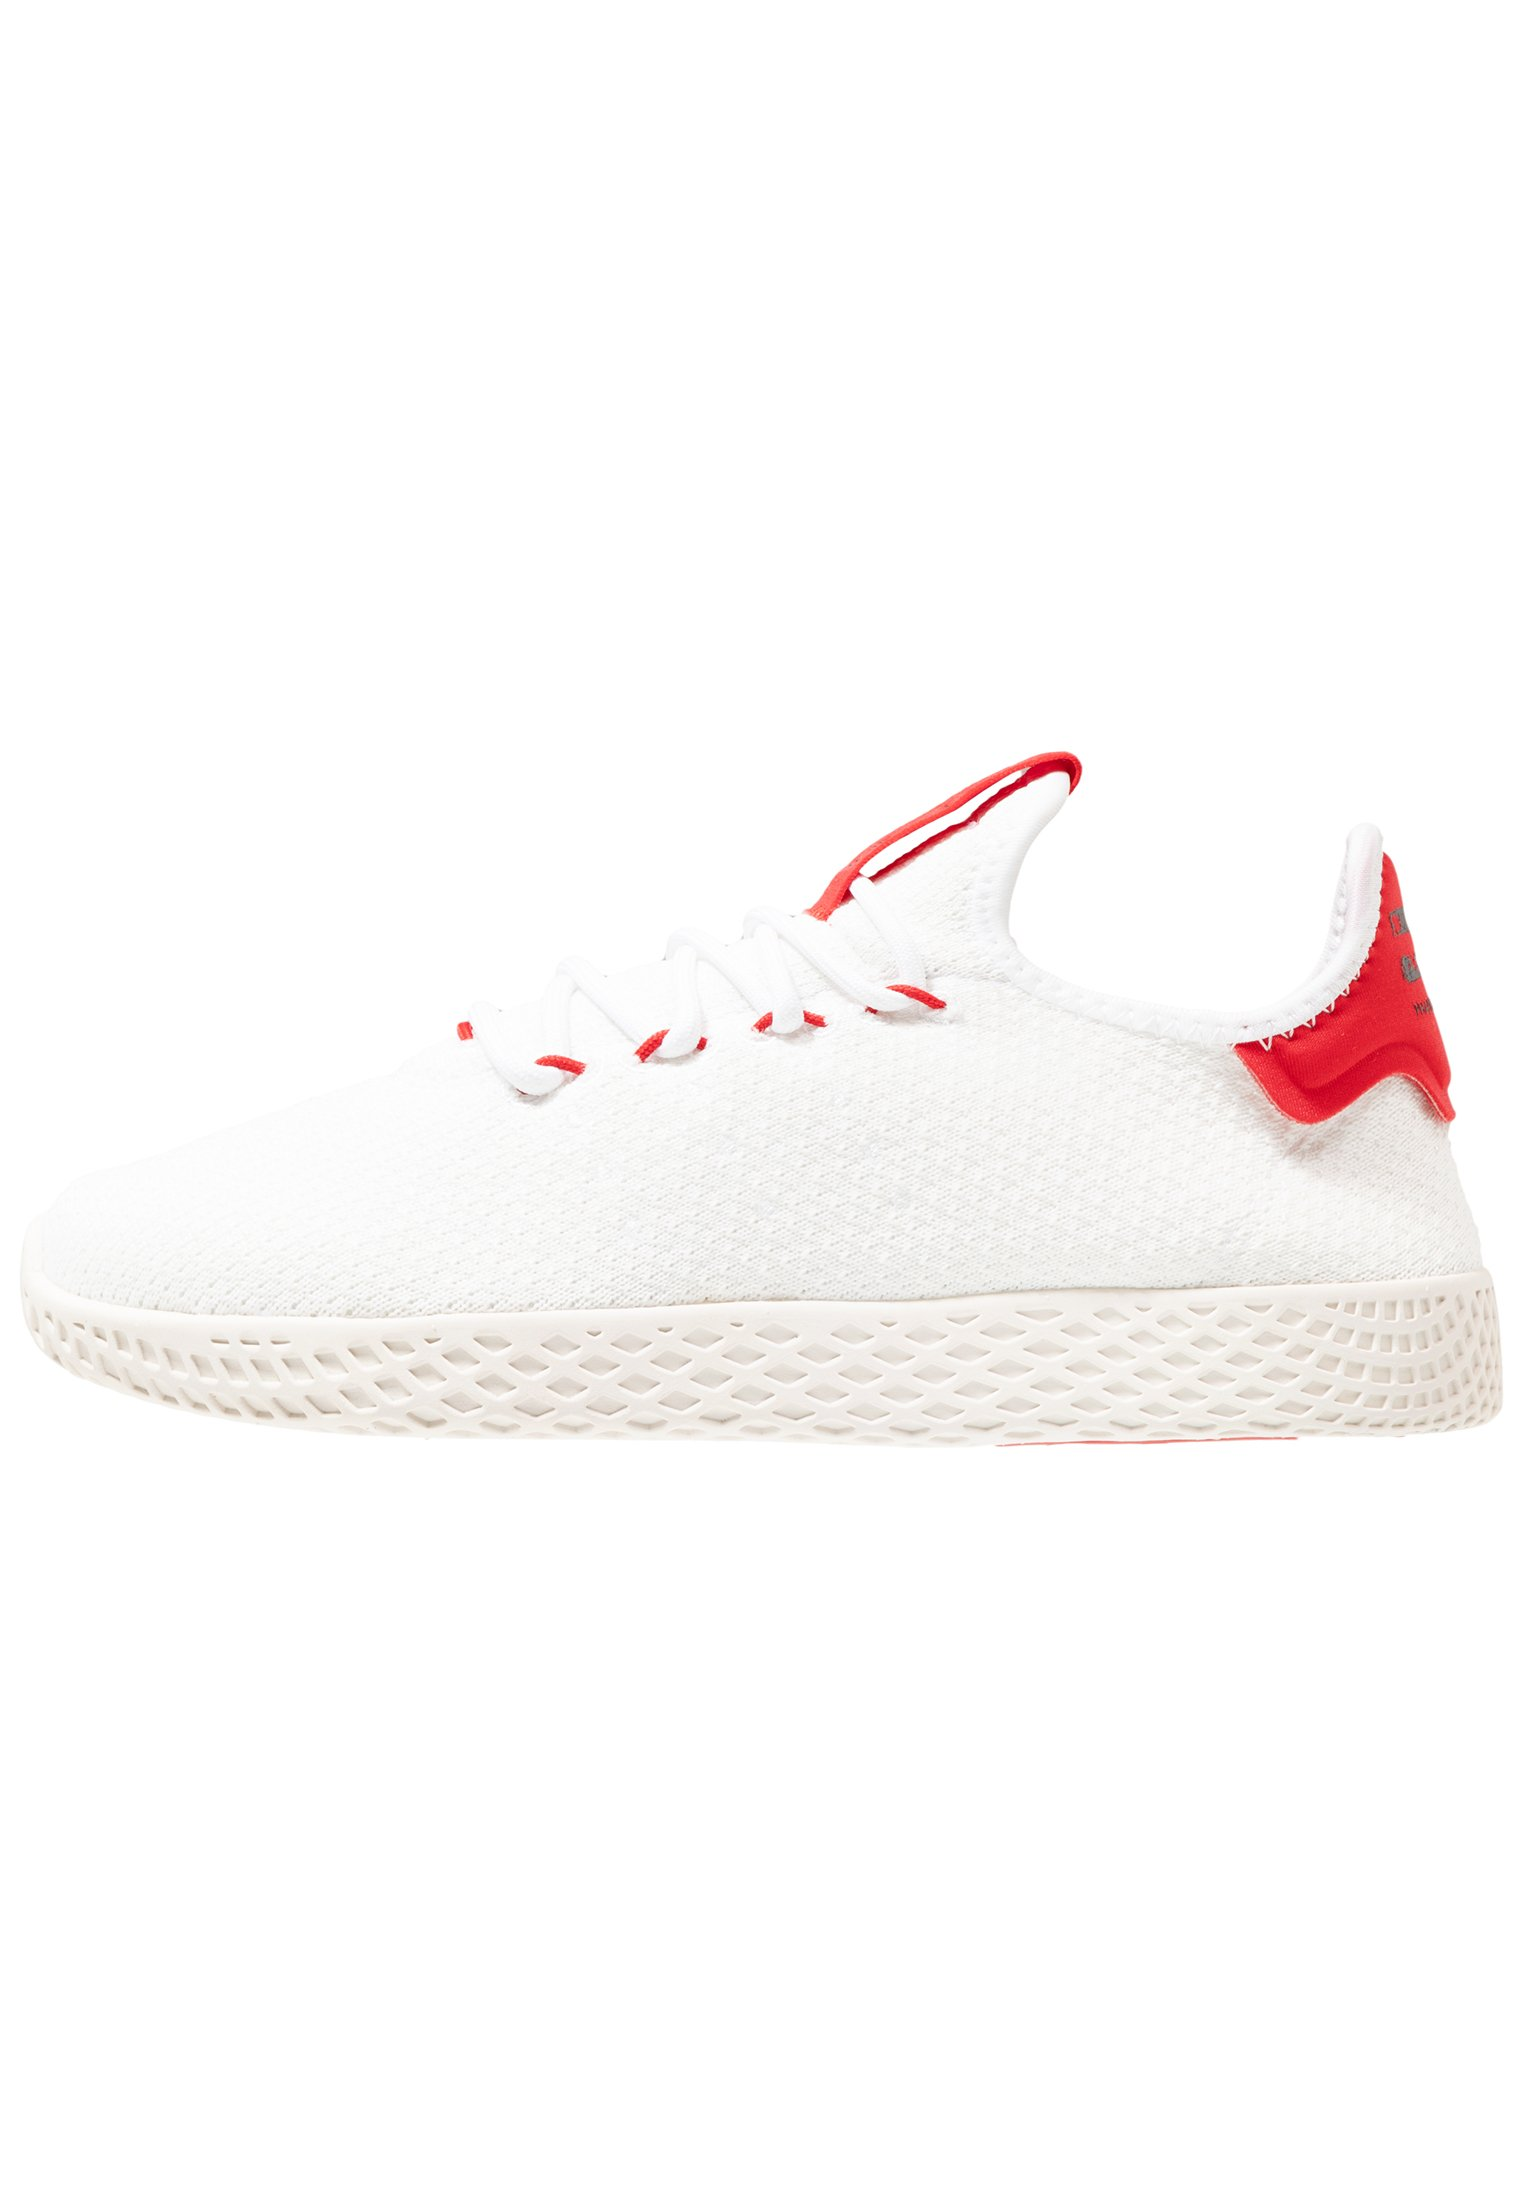 Adidas Originals Pw Tennis Hu - Matalavartiset Tennarit Footwear White/scarlet/calk White